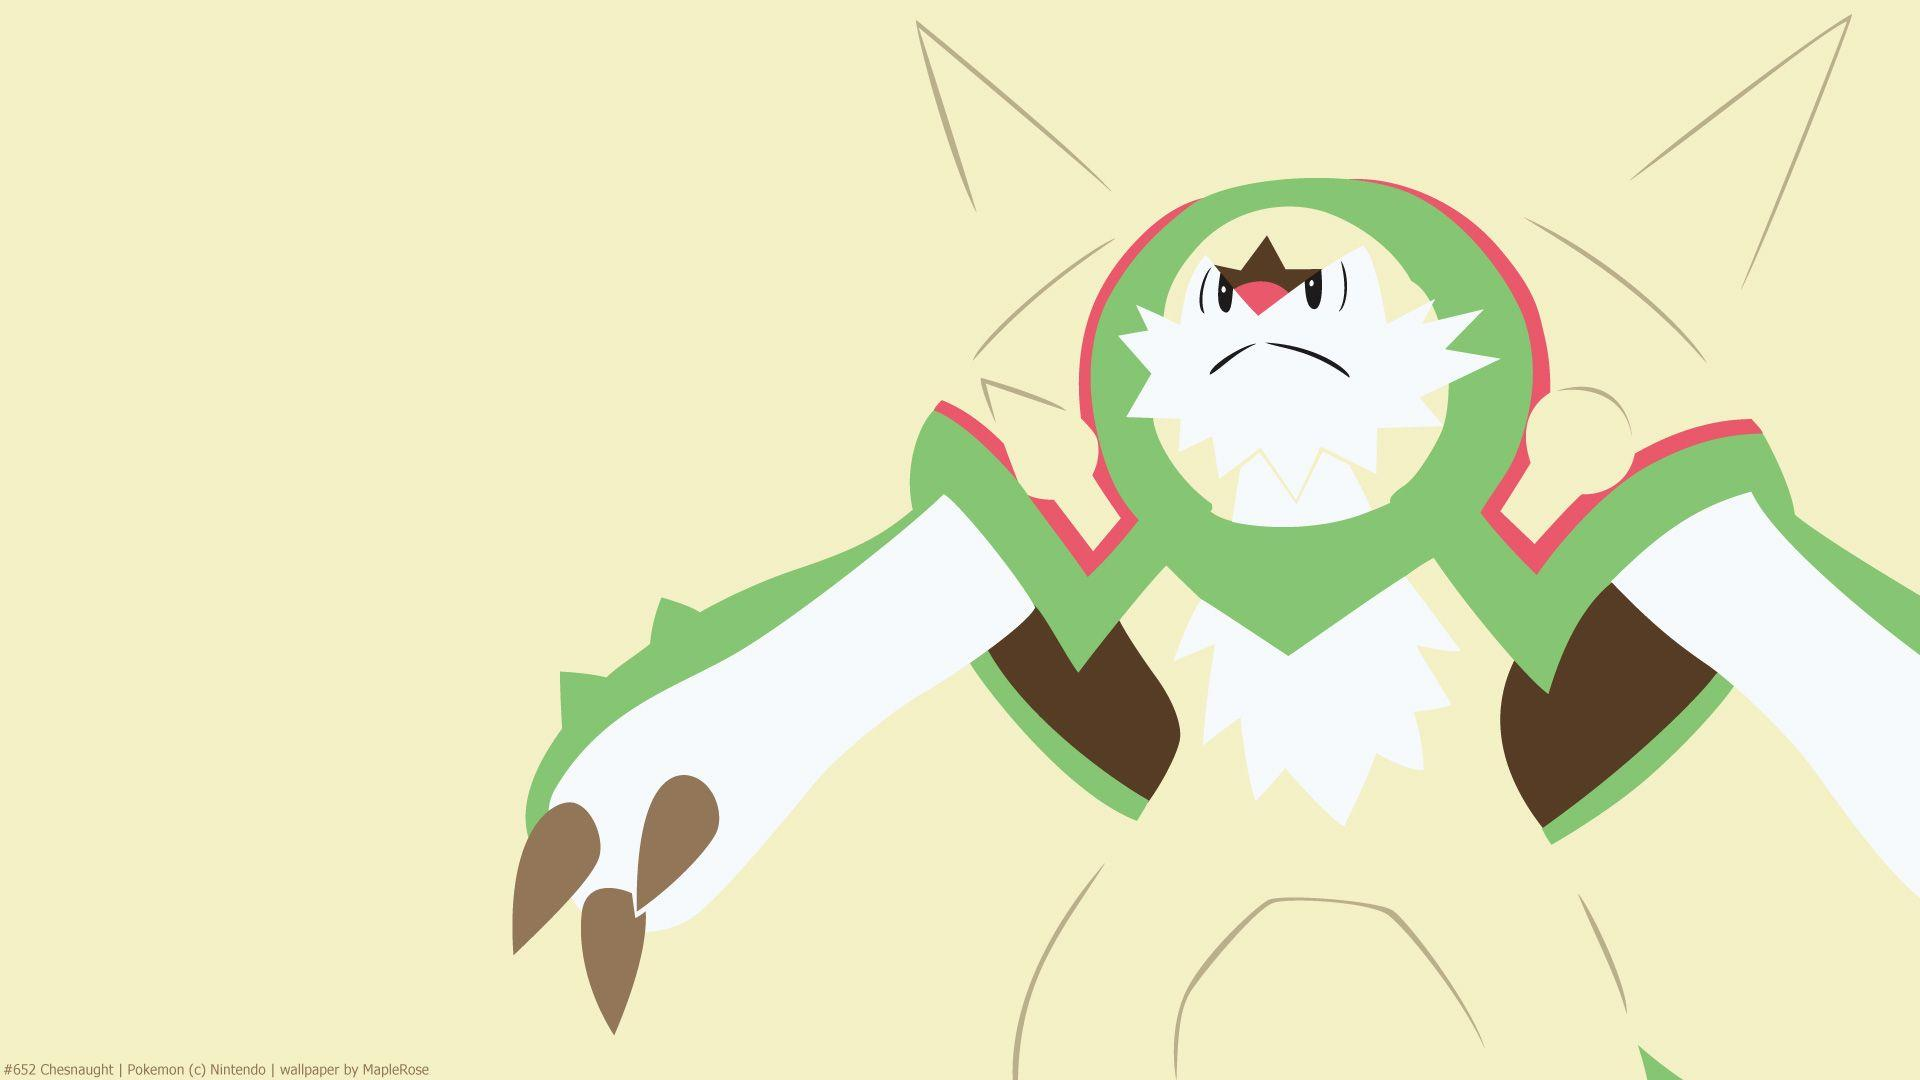 652 Chesnaught